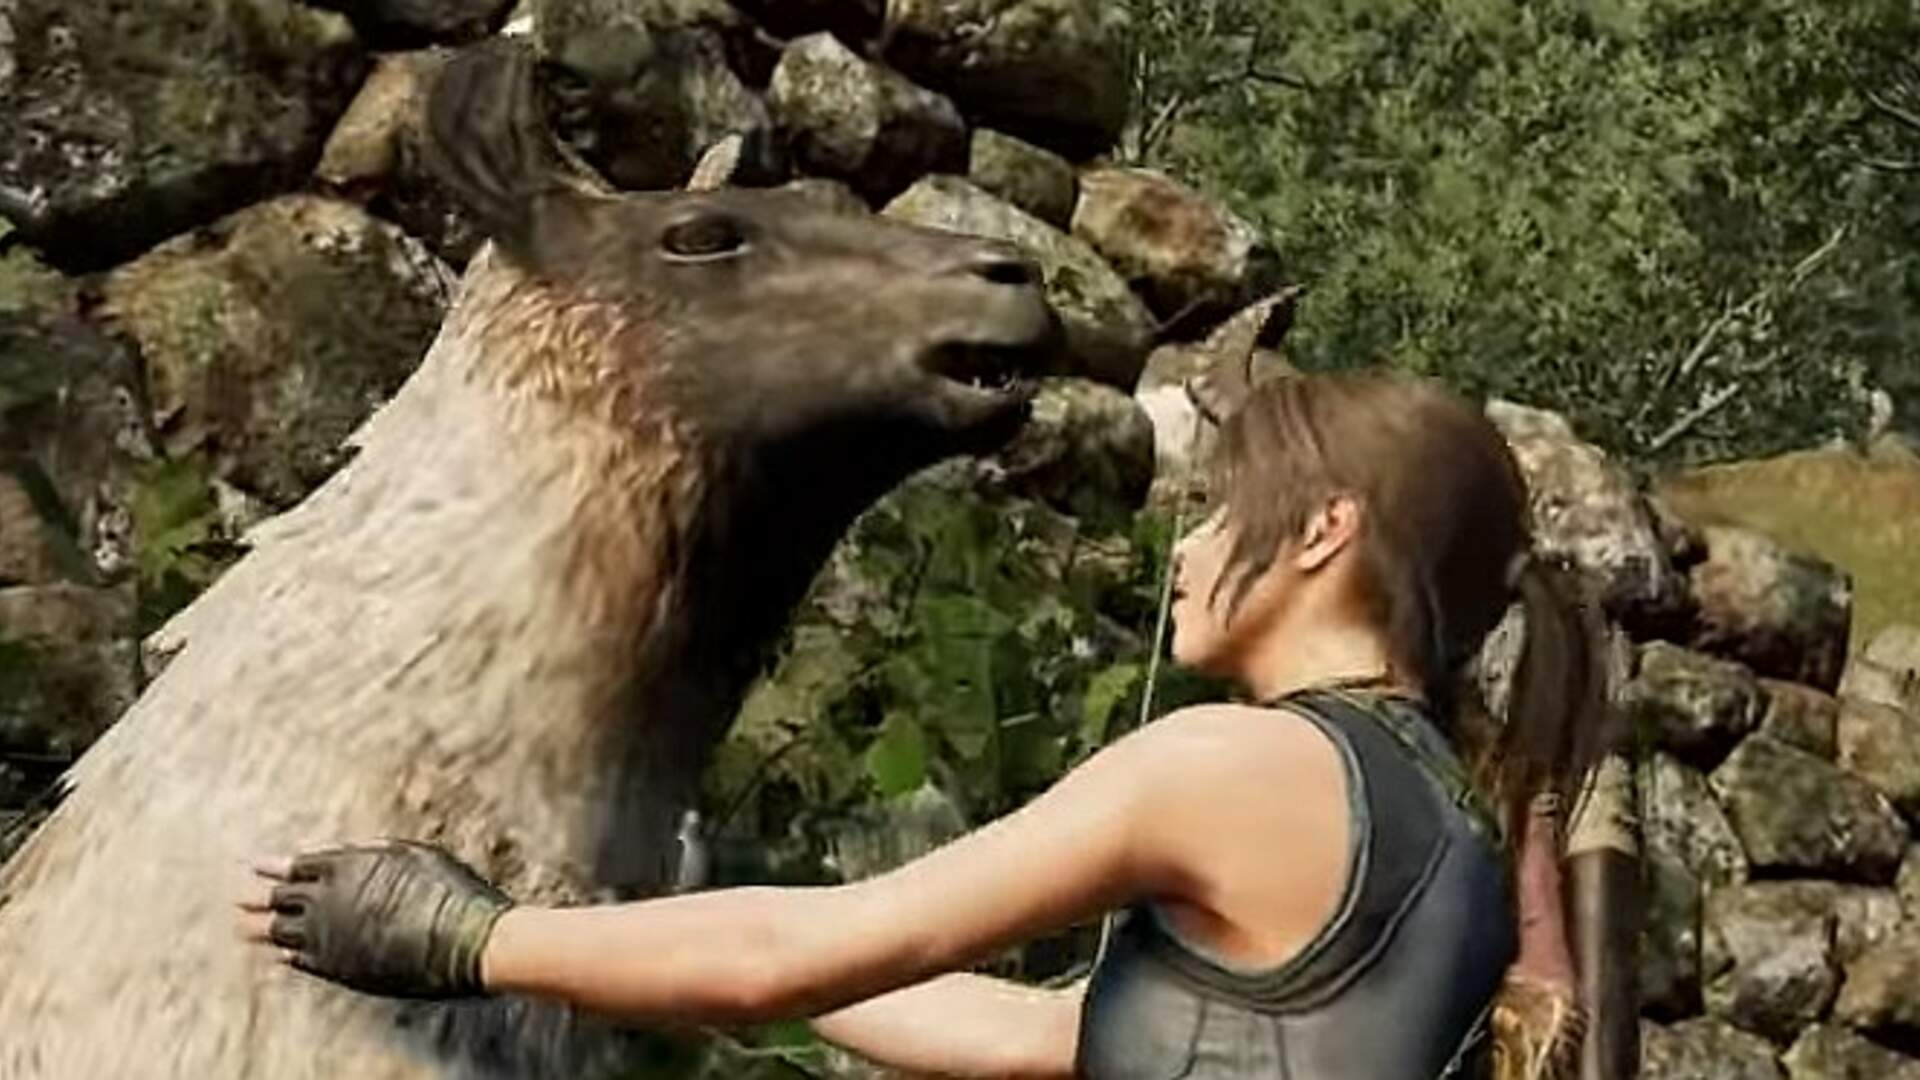 Watch Lara Croft Stroke a Llama in the New Shadow of the Tomb Raider Trailer